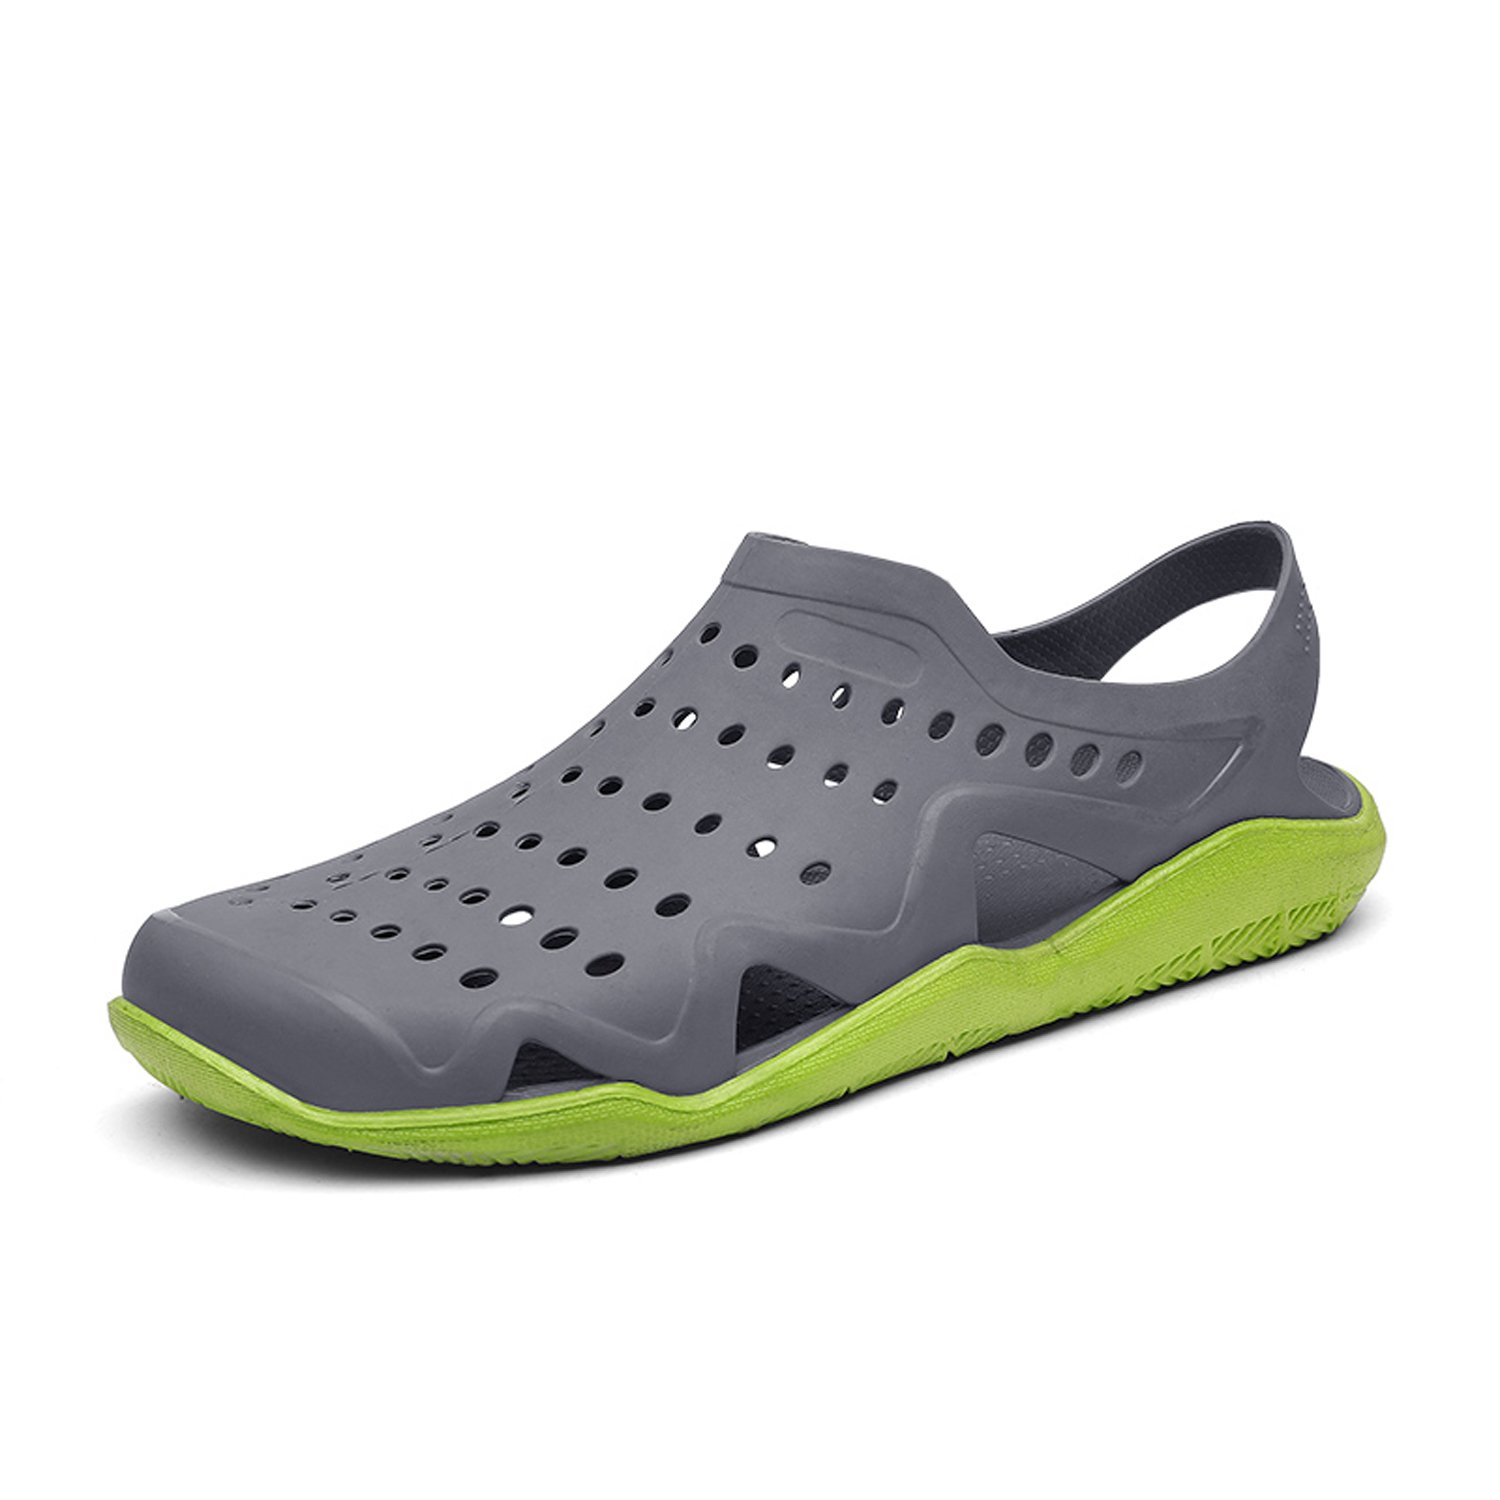 OUYAJI Mens Soft Breathable Holes Wading Sandals Beach Drifting Daily Walking Garden Indoor Fitness Slippers for The Summer